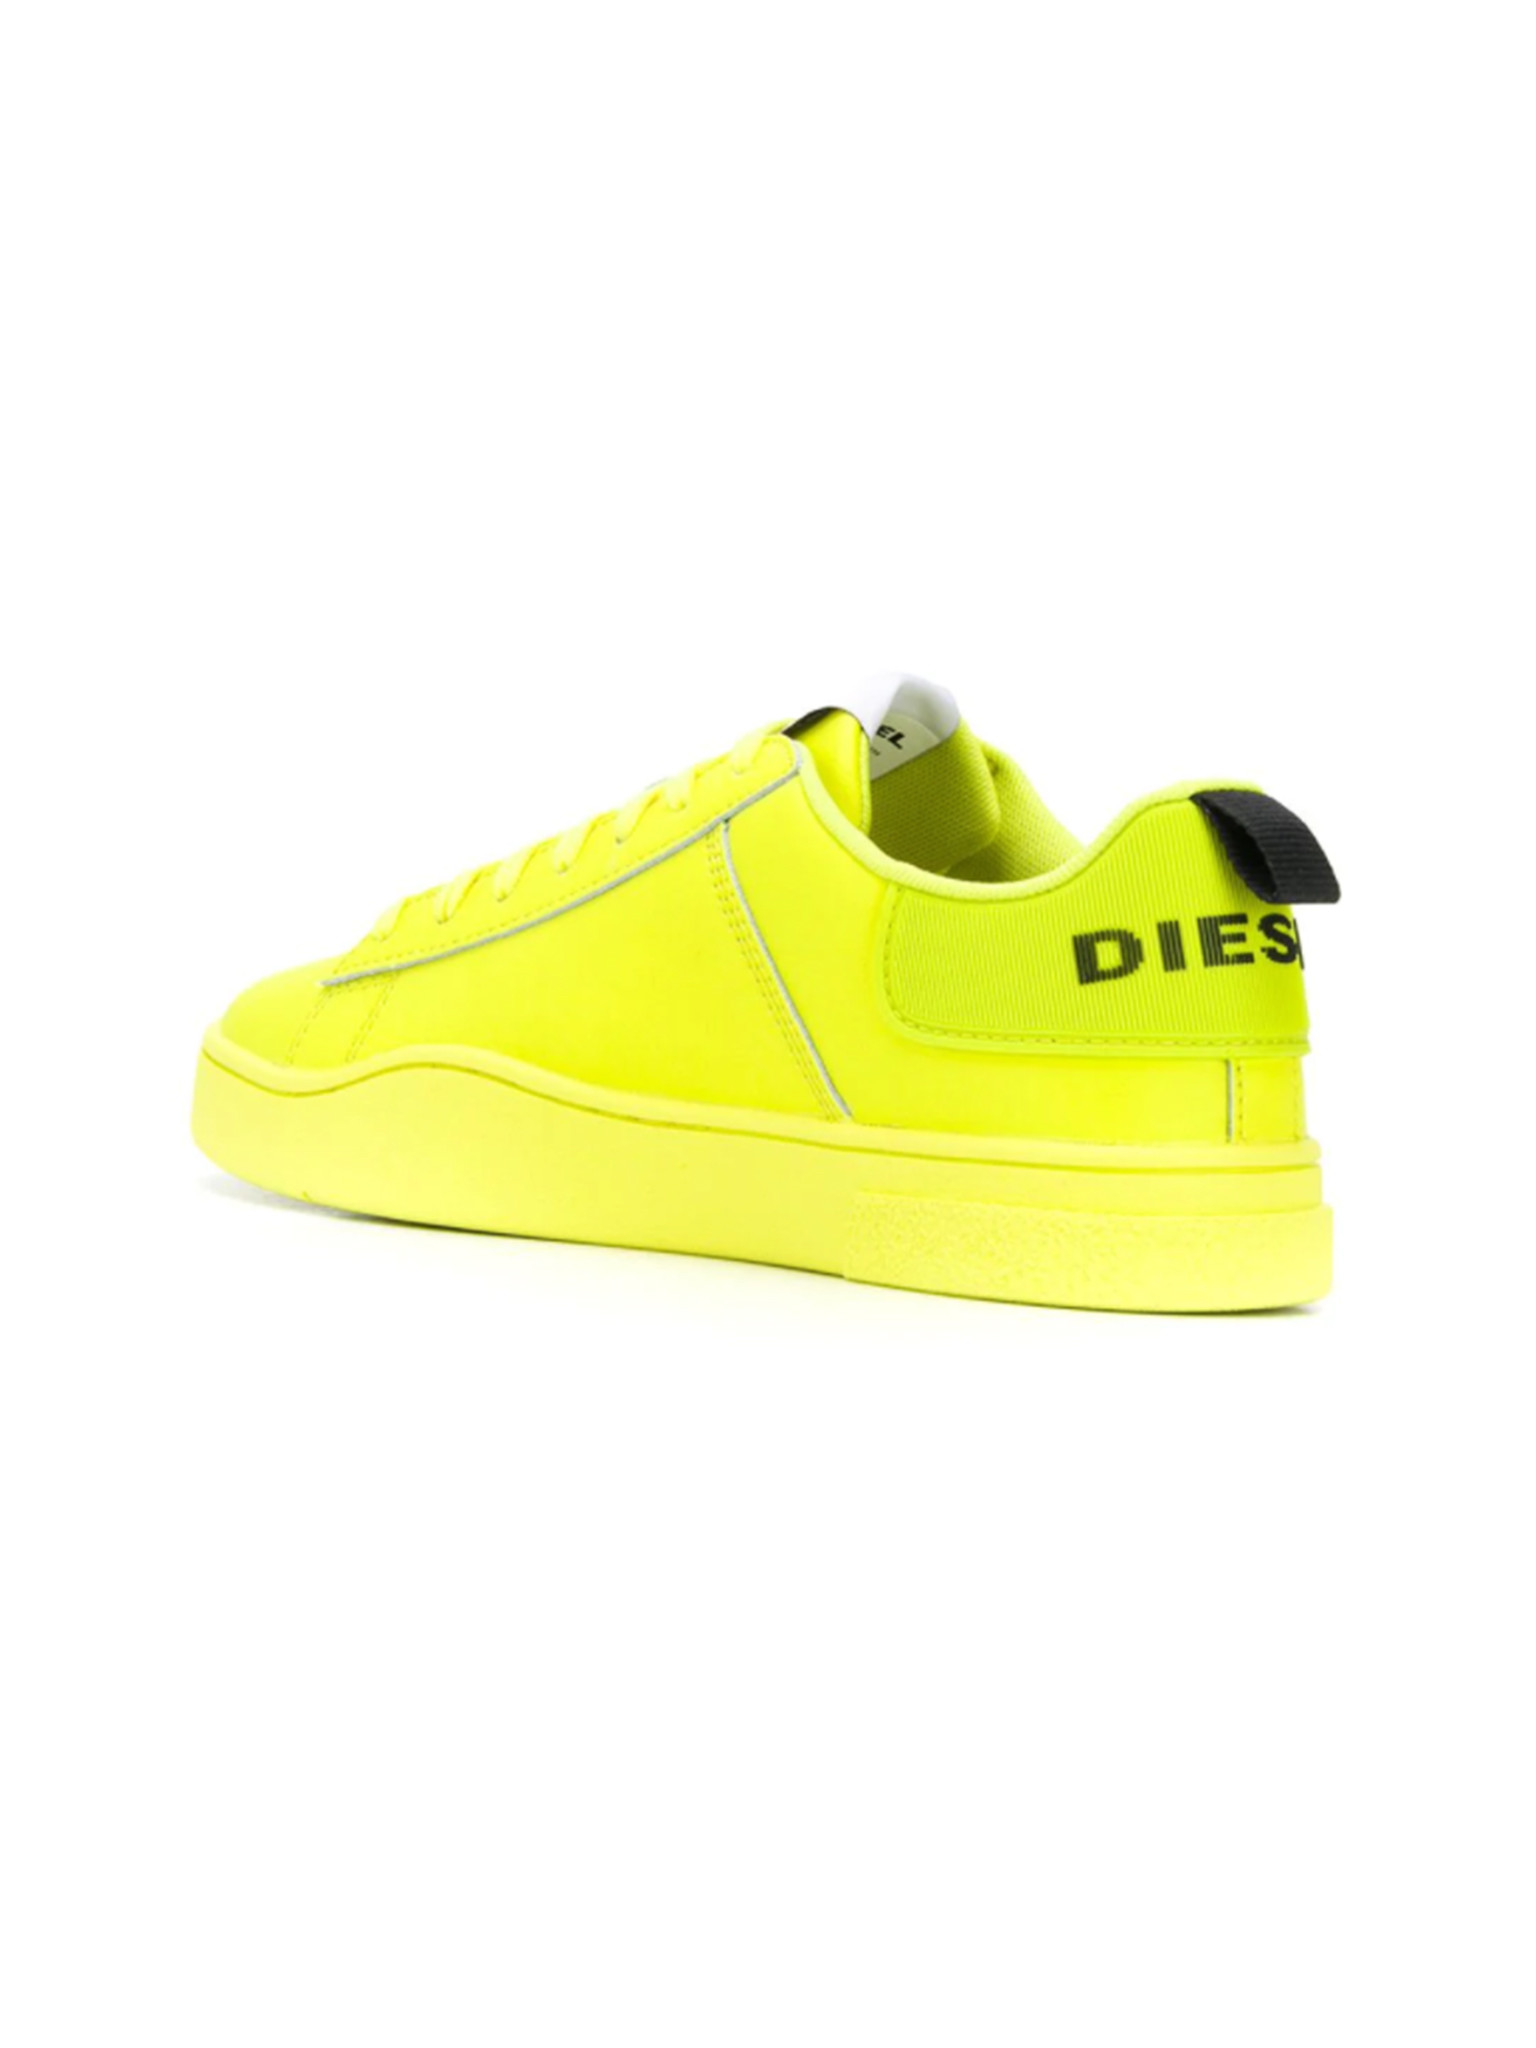 Sneakers In Neon Yellow